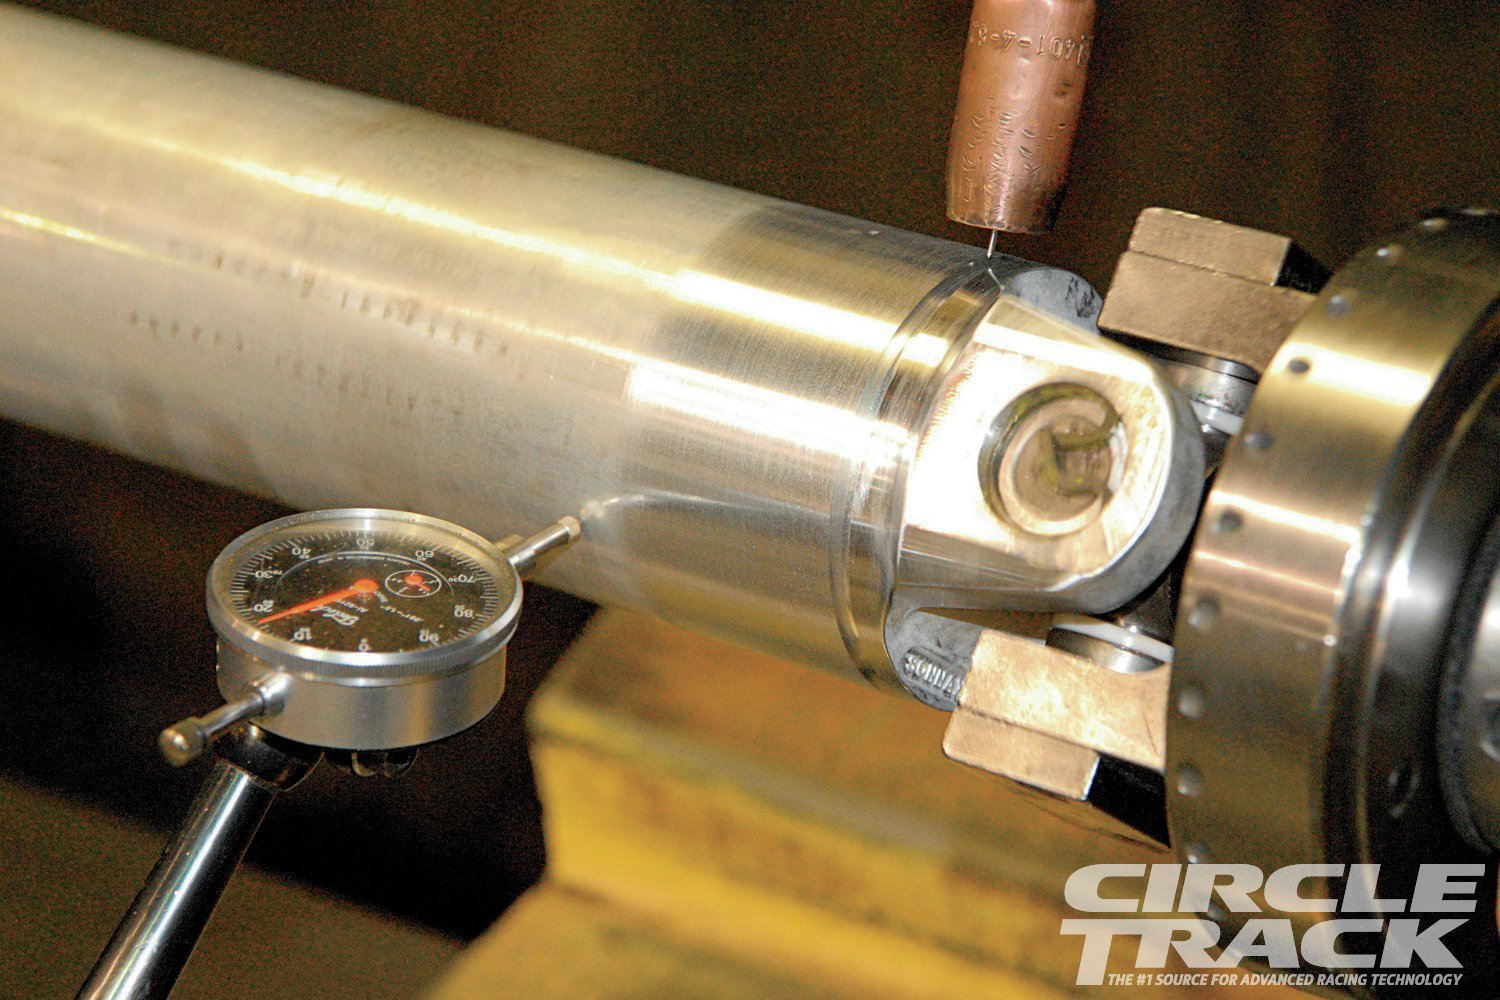 The heat generated from welding the yoke to the tube can warp the driveshaft. It may be only a little—and not enough that it would ever be a problem in an OEM application—but for racing where the rpm is much higher it can be a big deal. Here, Dynotech's technicians monitor runout while welding the yoke to the tube.